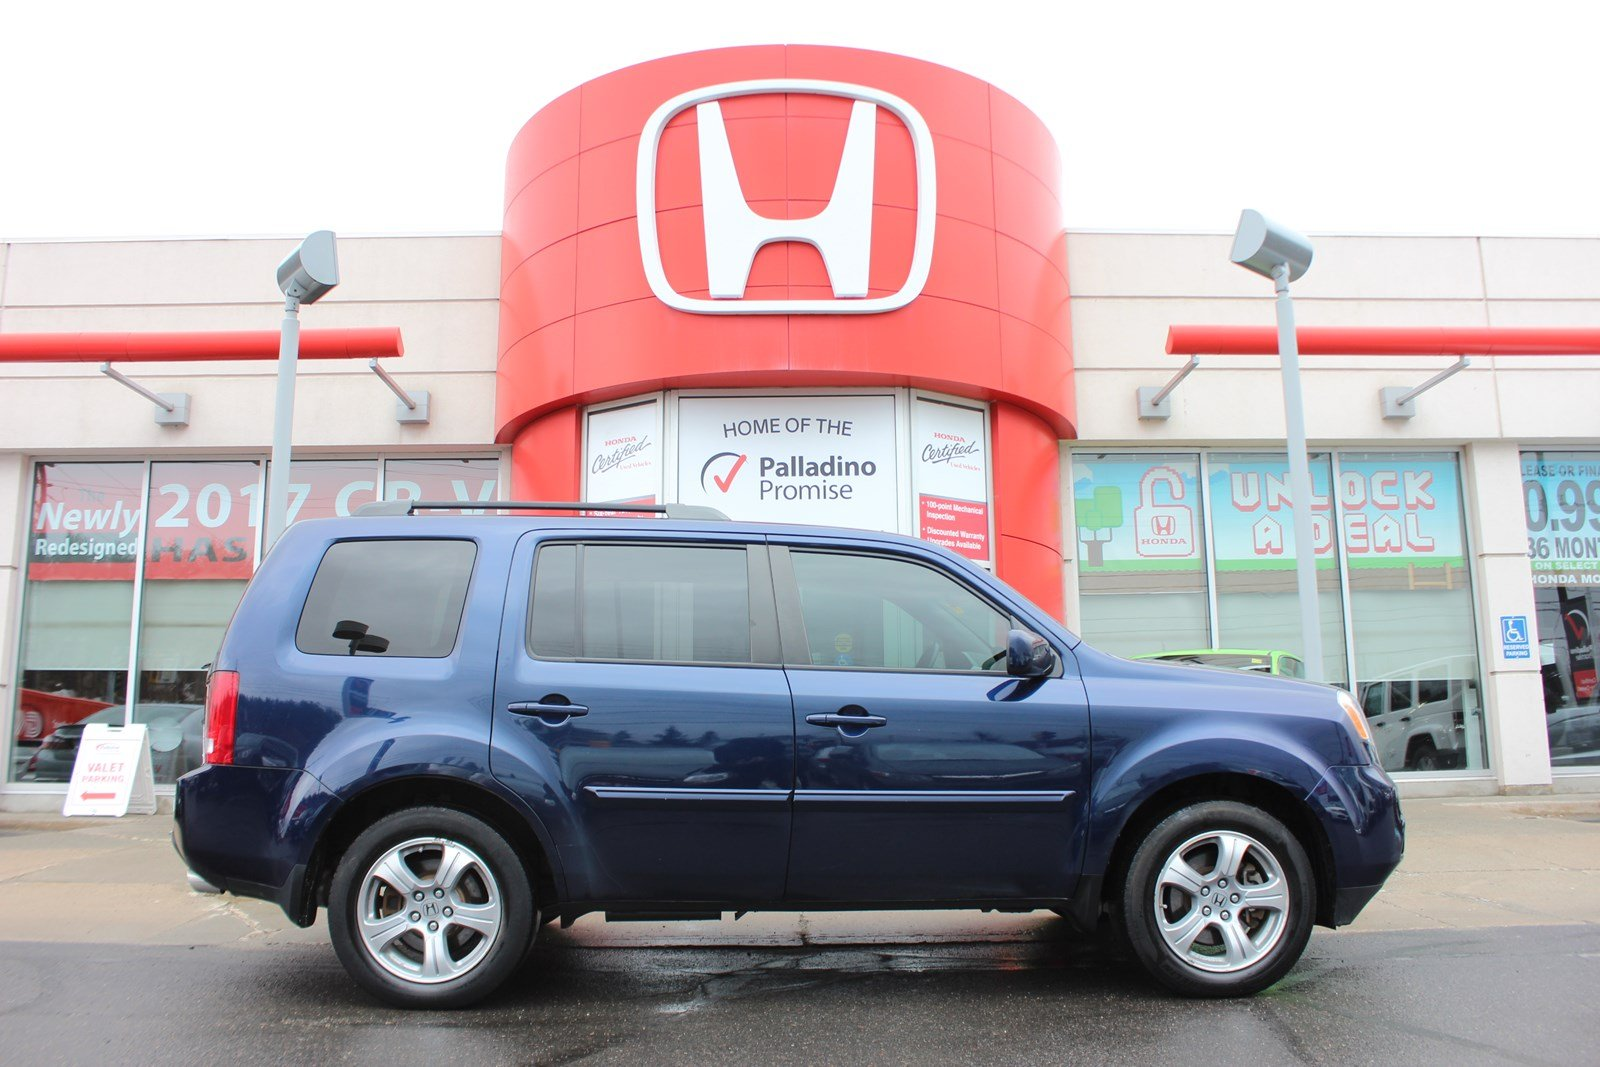 Pre-Owned 2014 Honda Pilot EX-L - GREAT SUV -